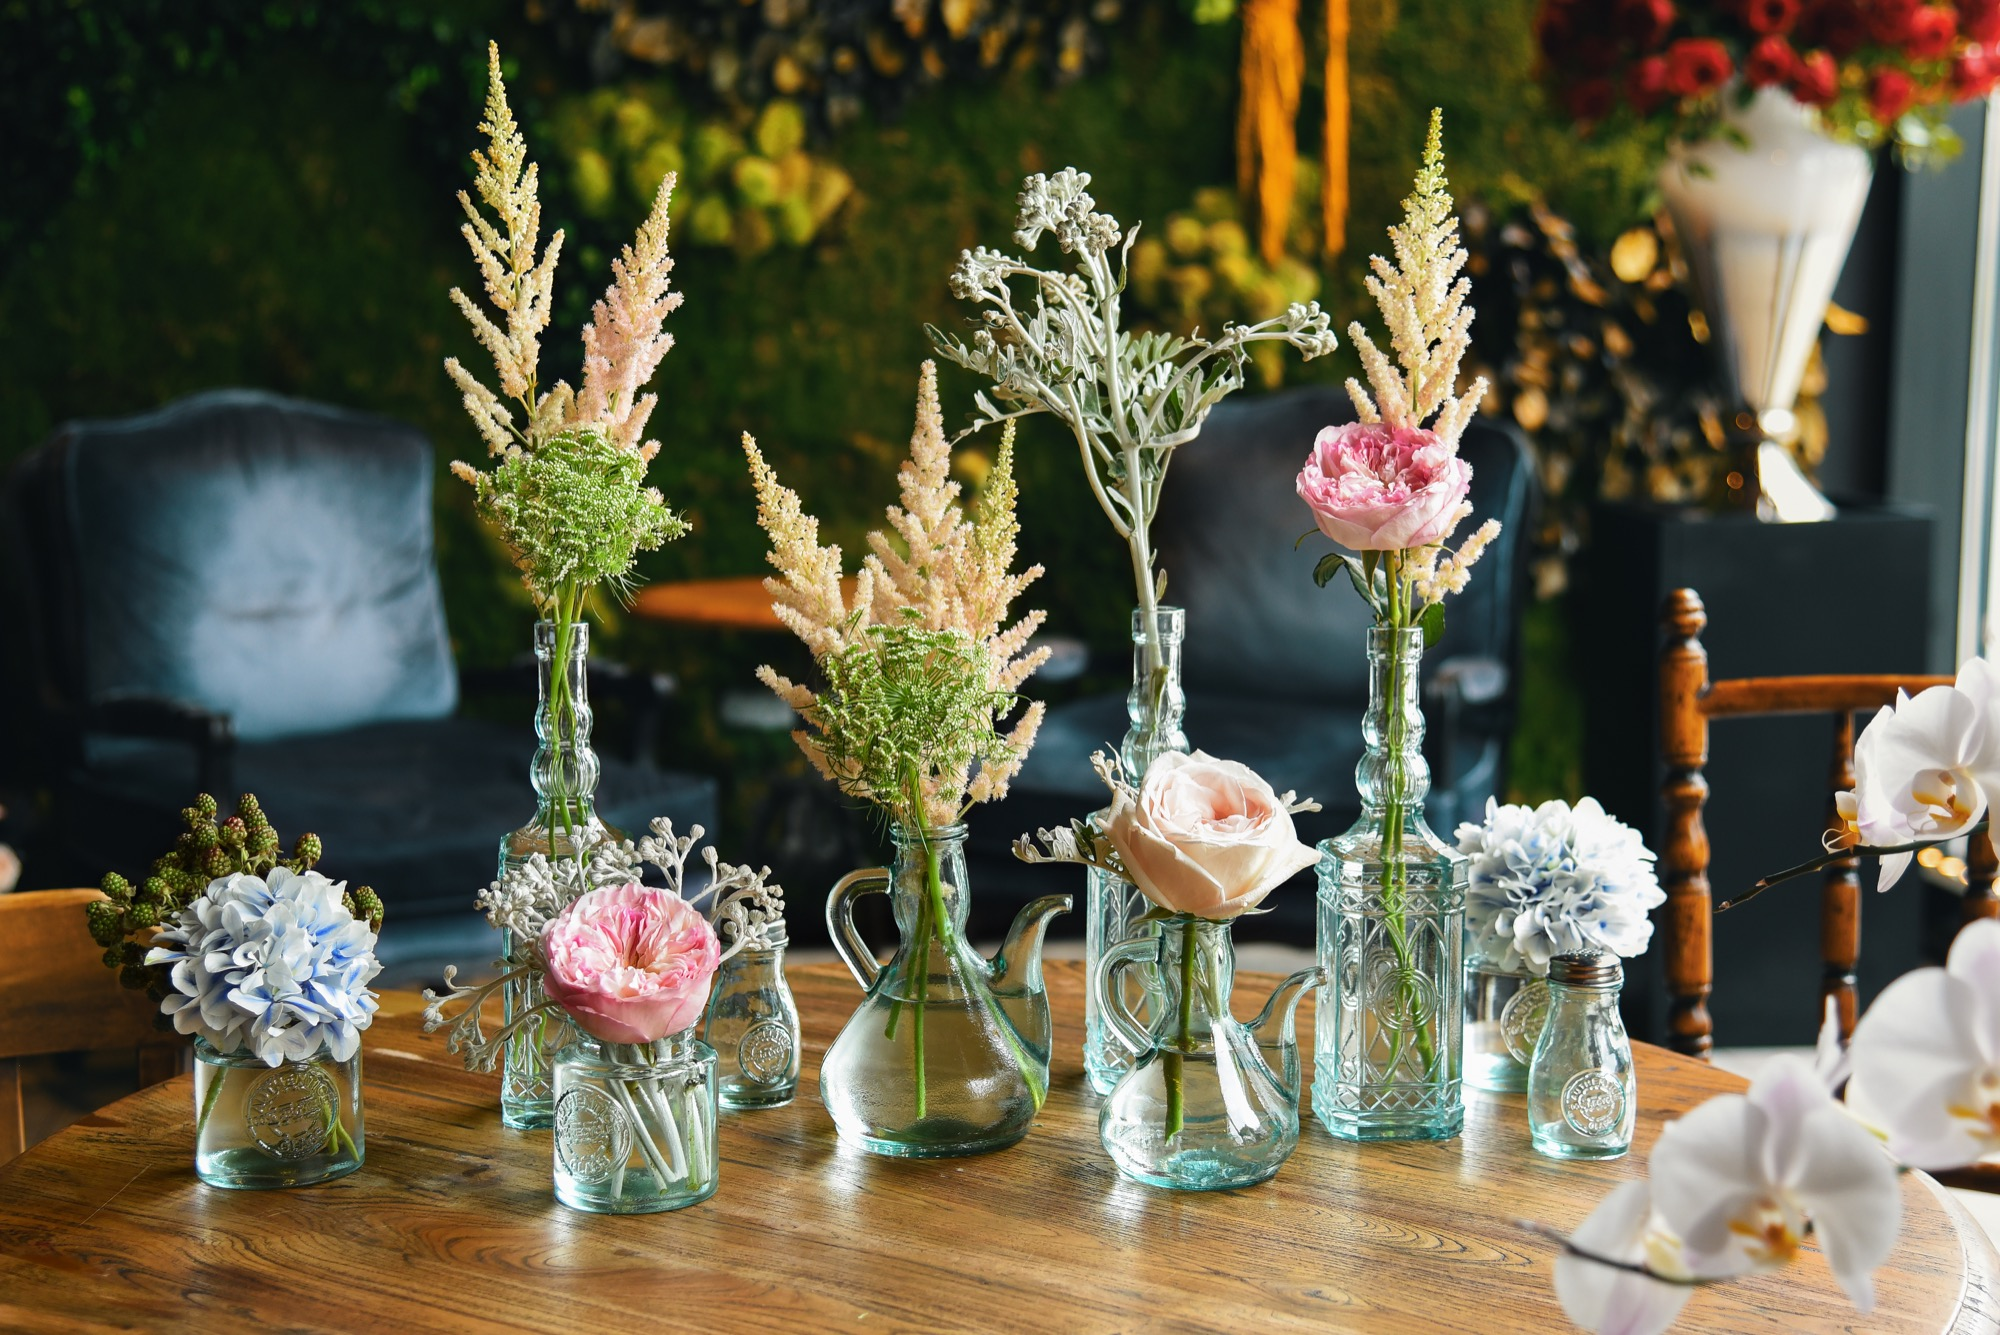 5 Unique Ways to Display Your Flowers - Savoir Flair